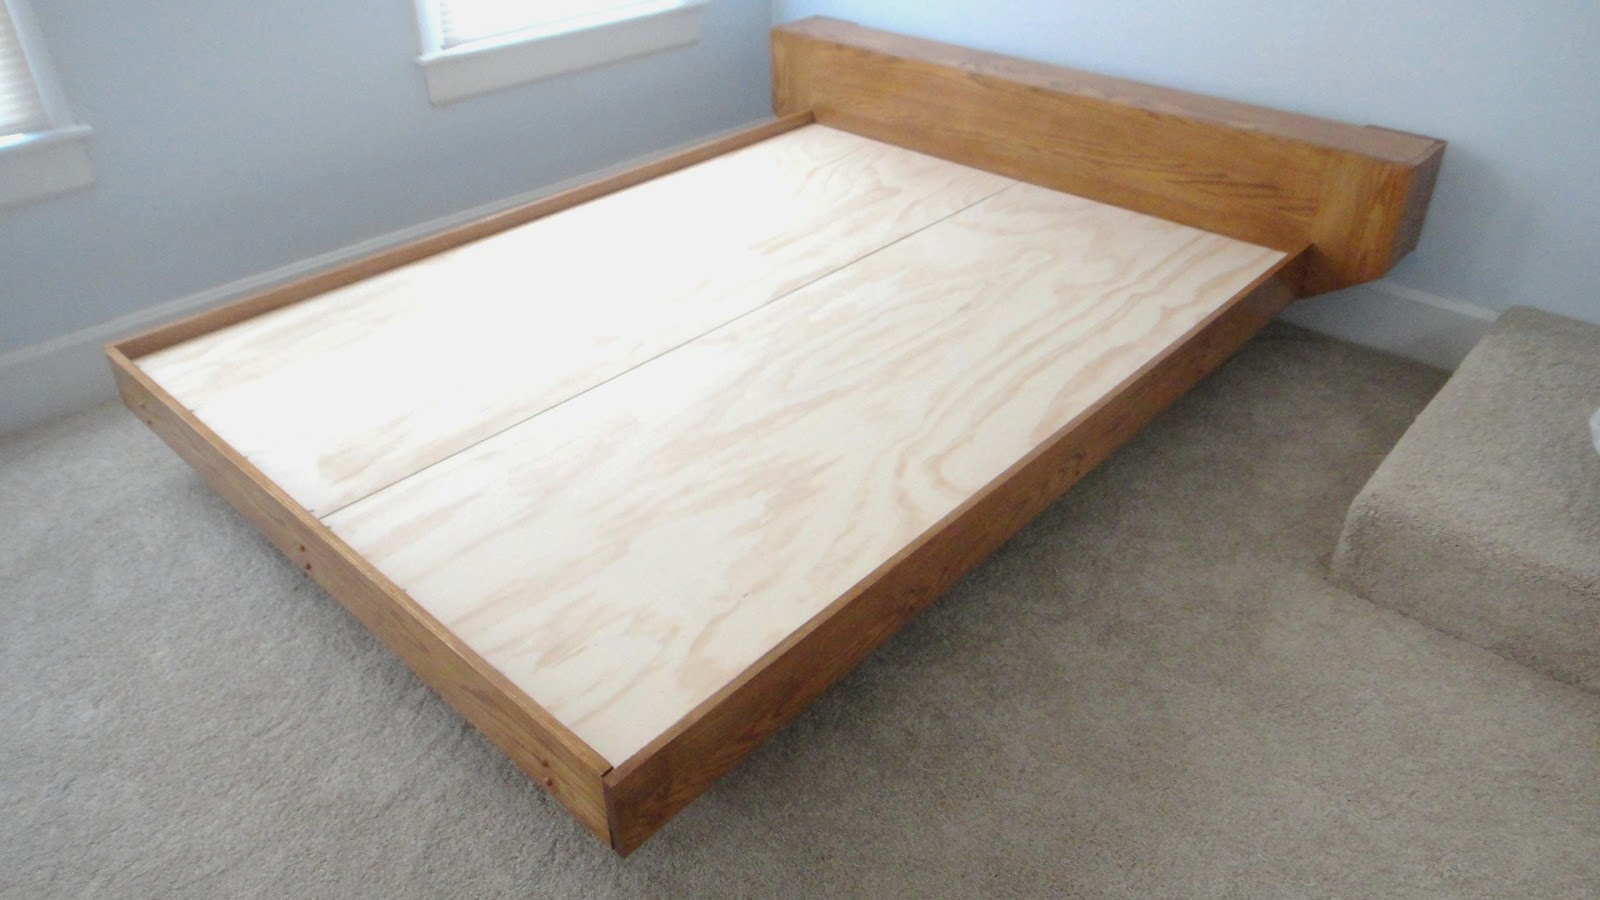 Diy Platform Bed Base The Tinkers Workshop The Platform Bed Project Is Completed